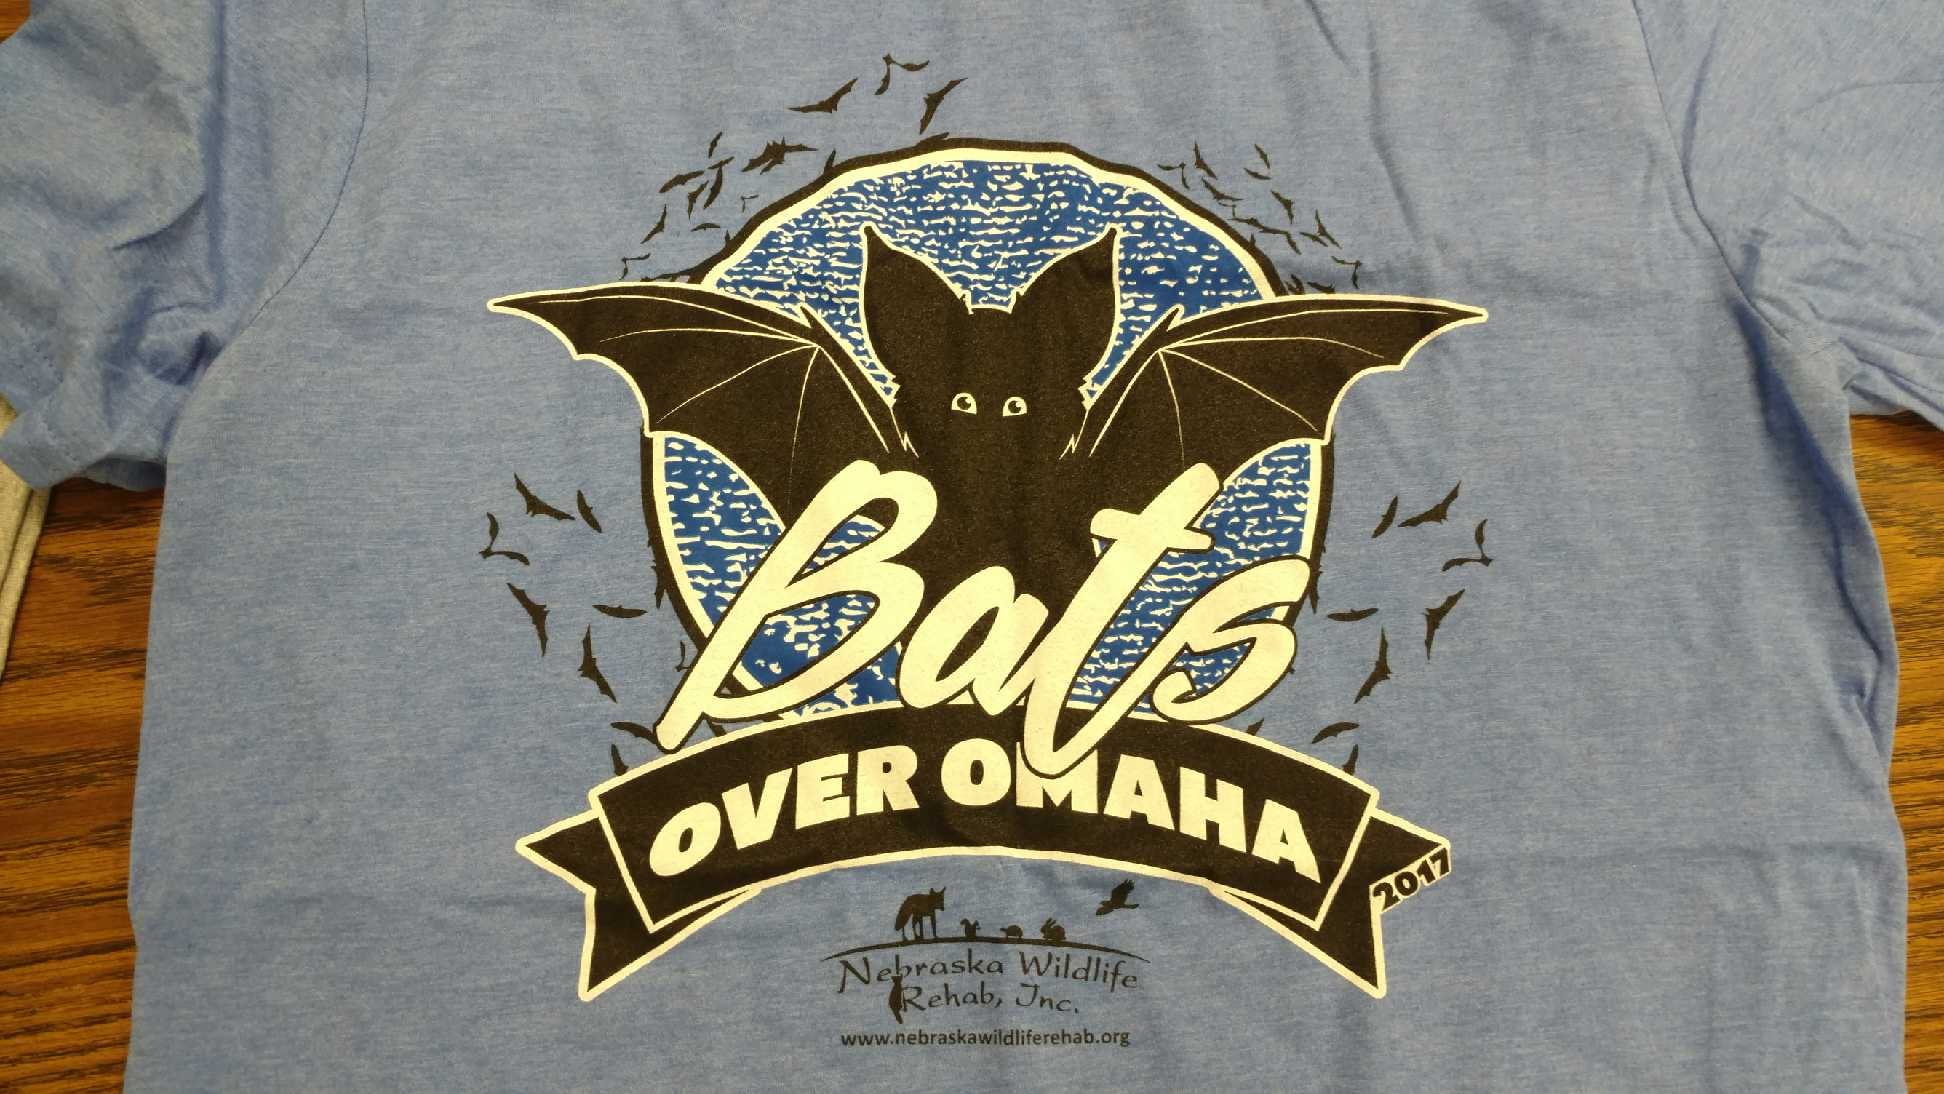 Bats Over Omaha Bat Release T-Shirt - 2017: Adult Large, Heather Blue